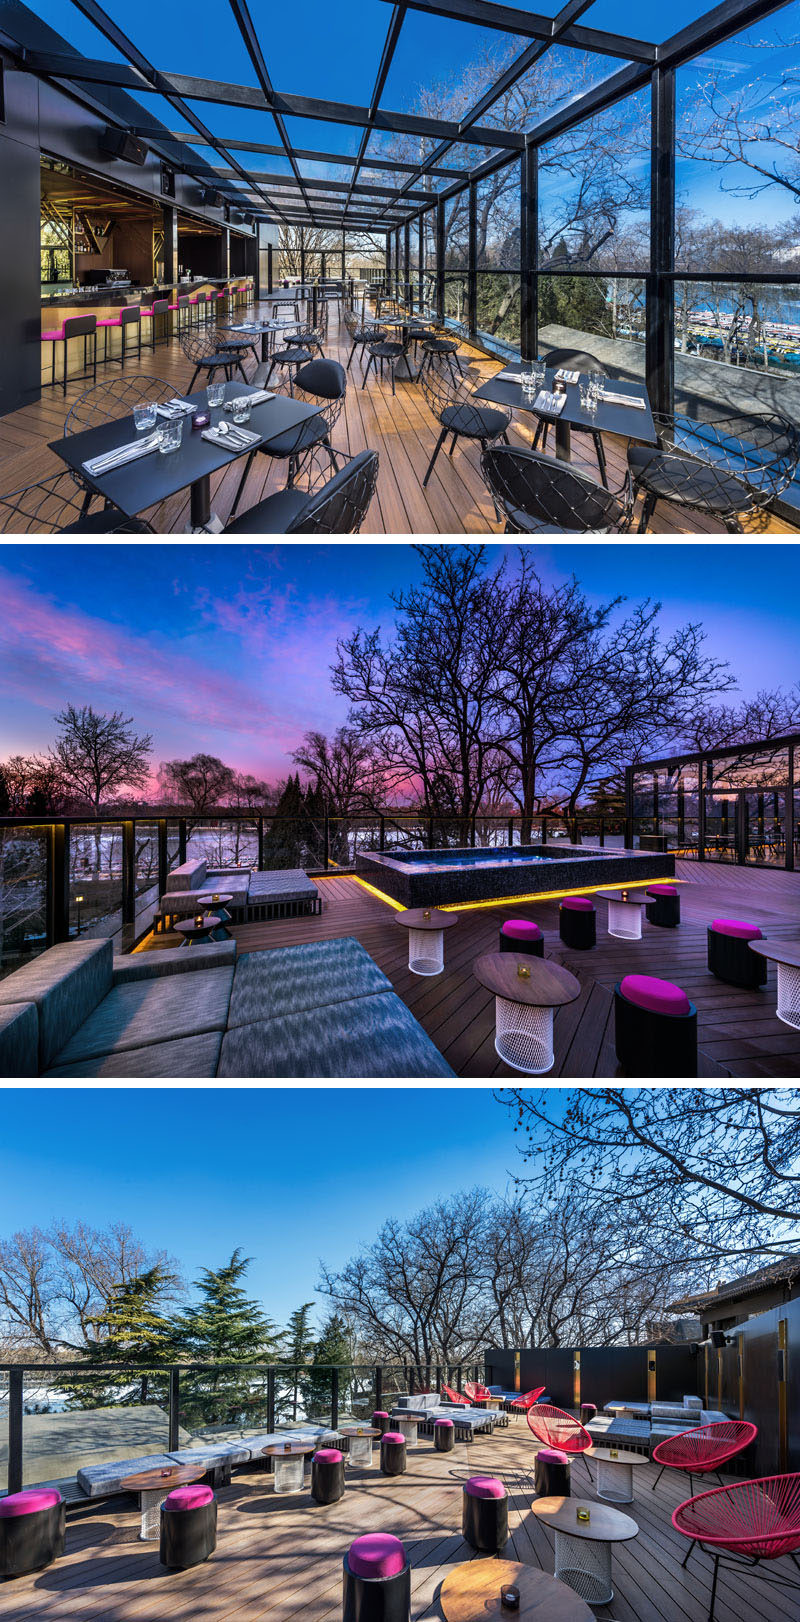 This modern hotel has a Rooftop Moon Bar, that features a treetop alfresco experience, with full views to the picturesque Houhai lake and park, plus there's also a Jacuzzi for relaxing and having a drink. #ModernHotel #Beijing #HotelBar #RooftopBar